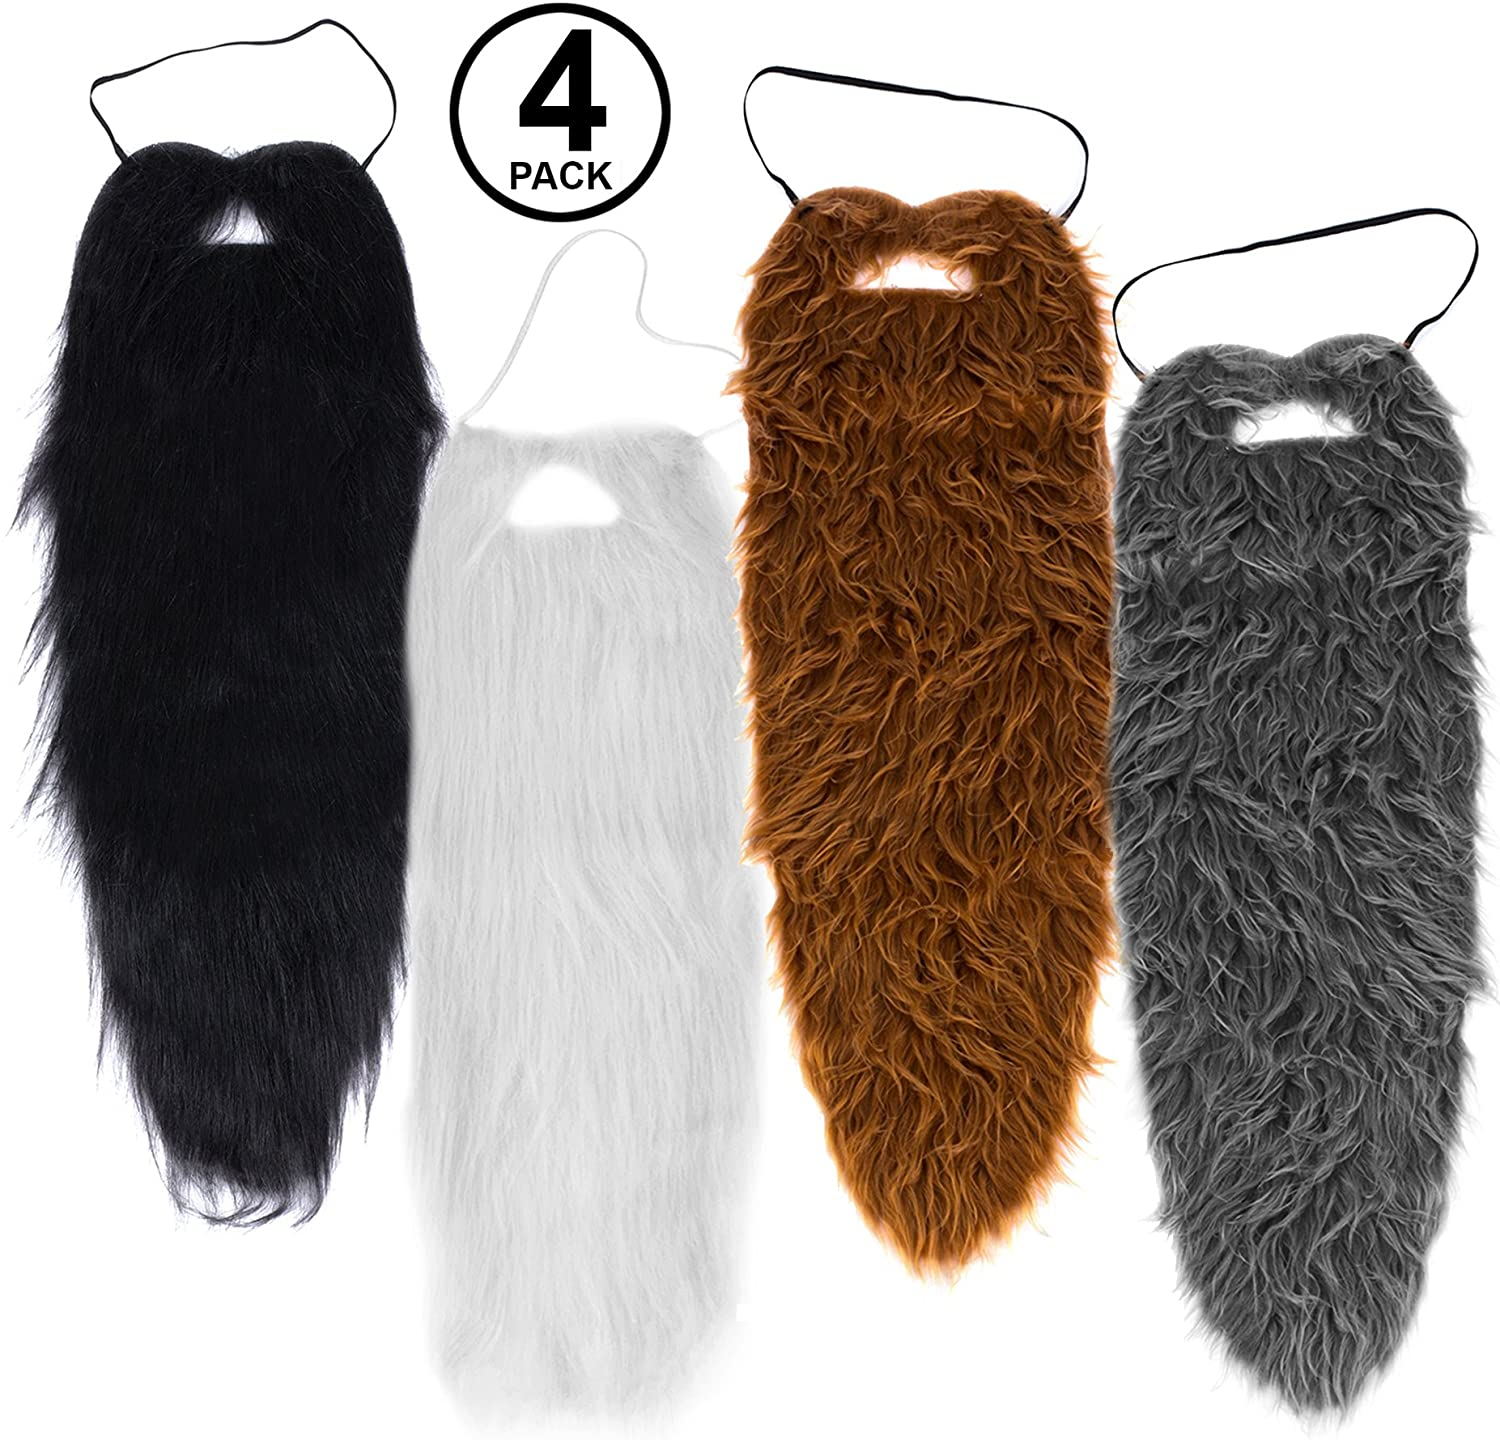 Tigerdoe Beards - 4 Pack - Long Beard Costume - 23 Beards - Fake Beard and Mustaches - Costume Accessories - Dress up - Fake Beards